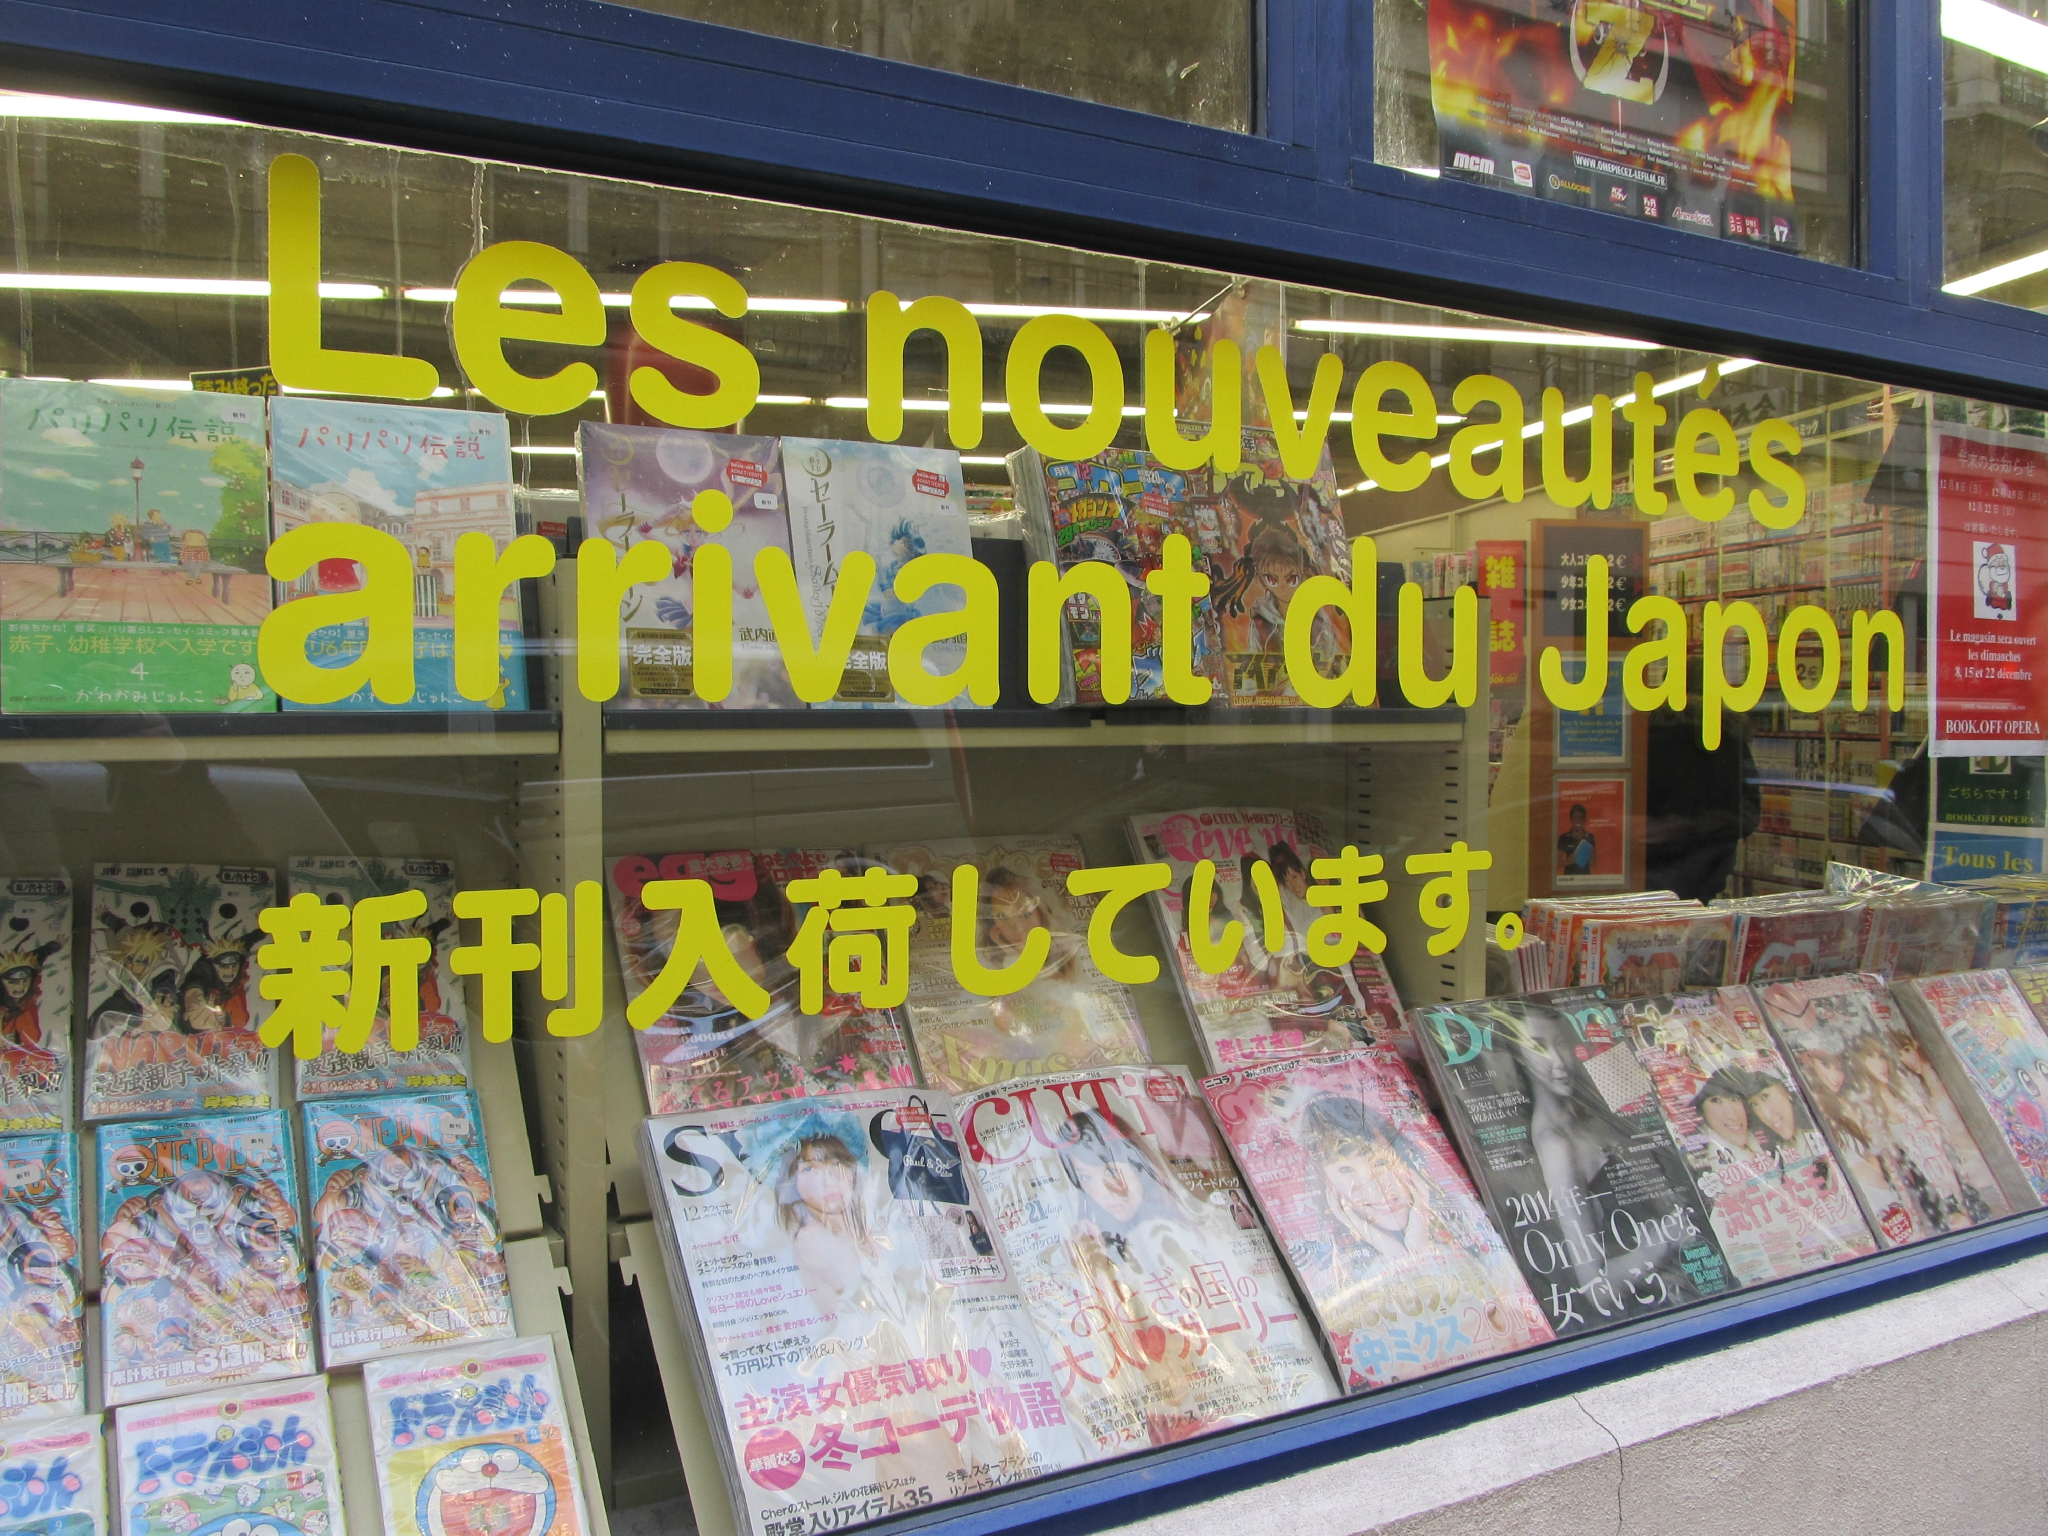 Book off magasin de manga et livres japonais a paris ma for Mobilier japonais paris